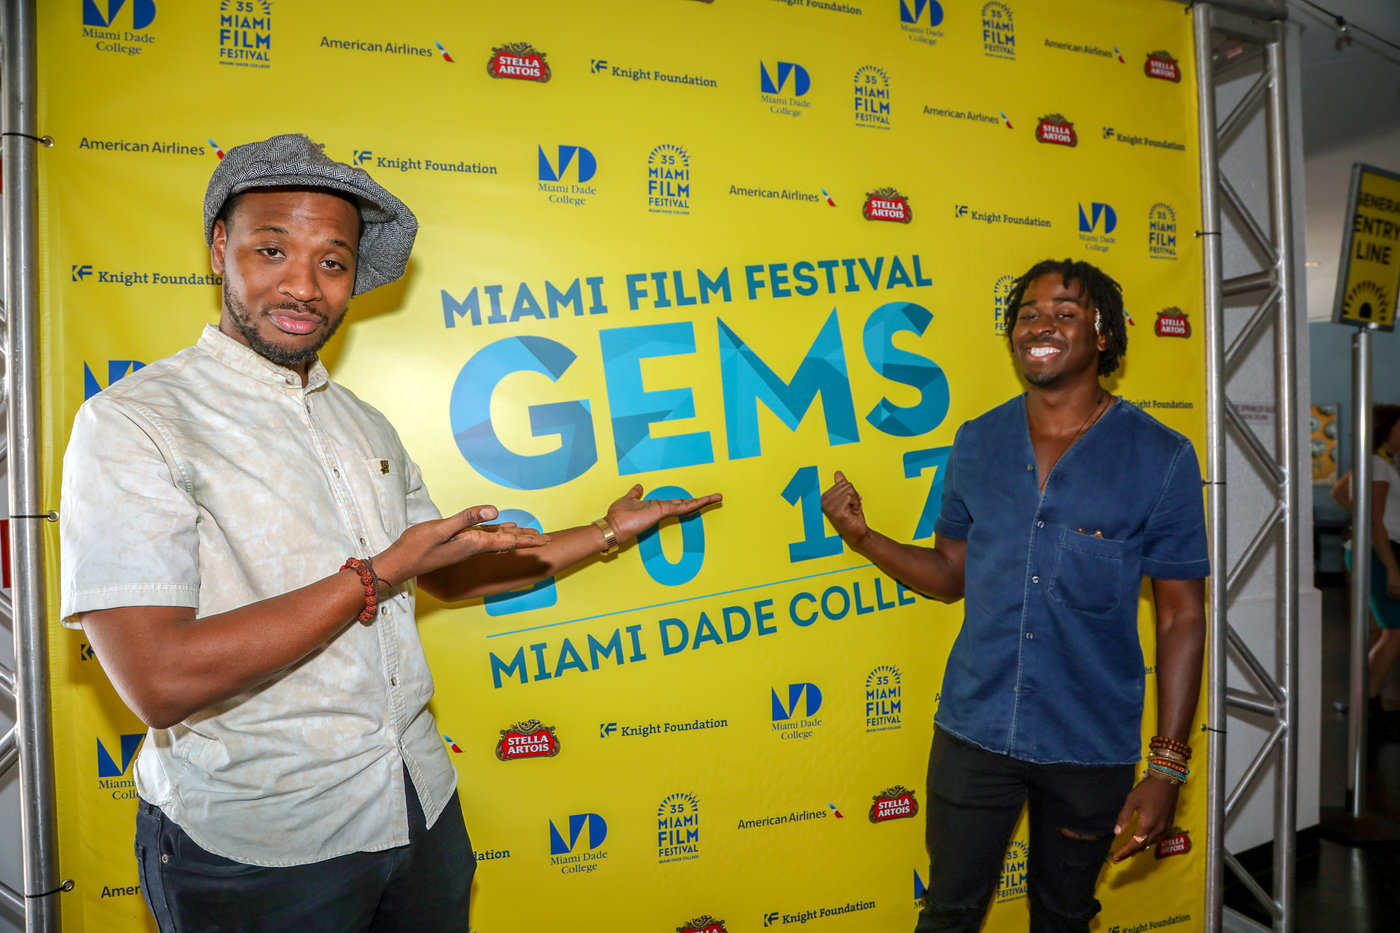 Film directors and New World School of the Arts alumni Joshua Jean-Baptiste and Edson Jean